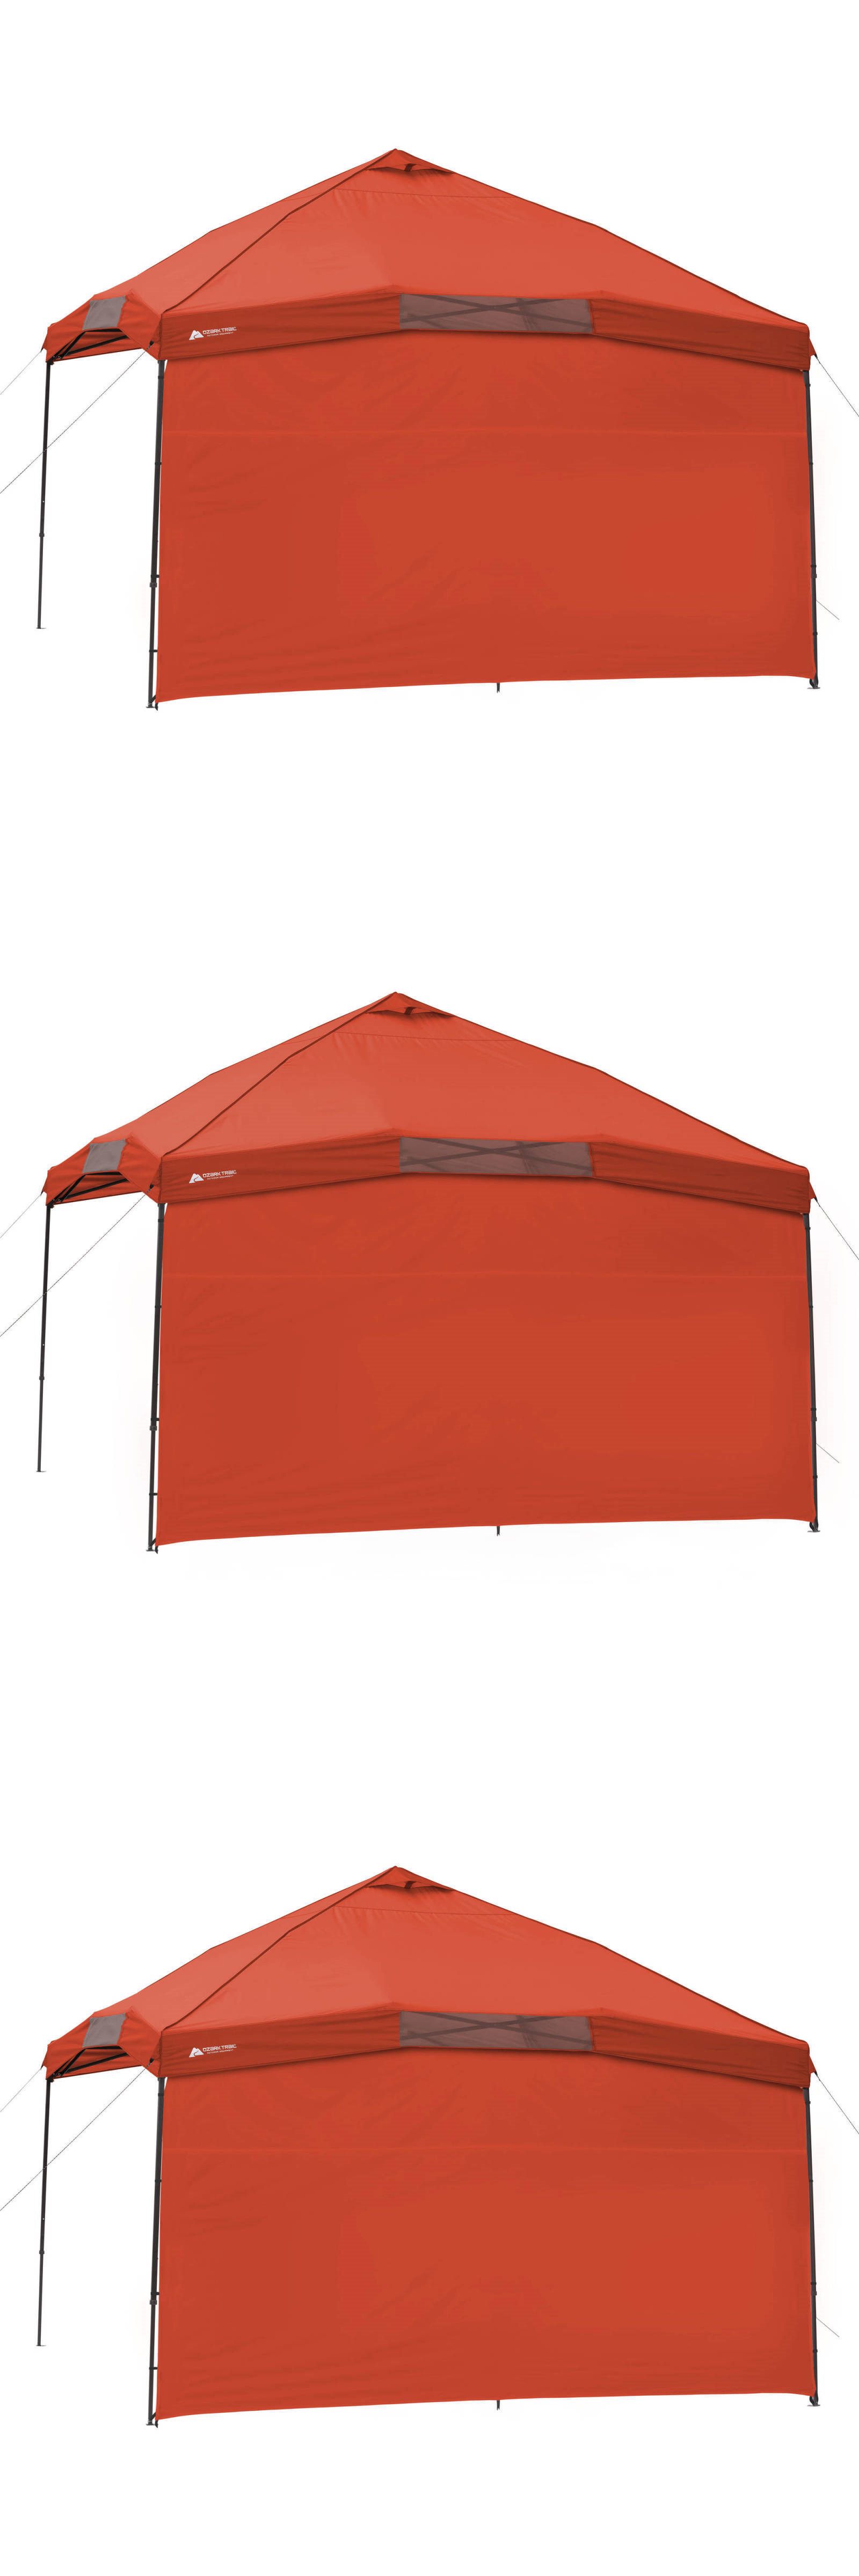 Canopies And Shelters 179011: 12 X 12 Gazebo Top Cover Patio Canopy Sun  Wall Portable